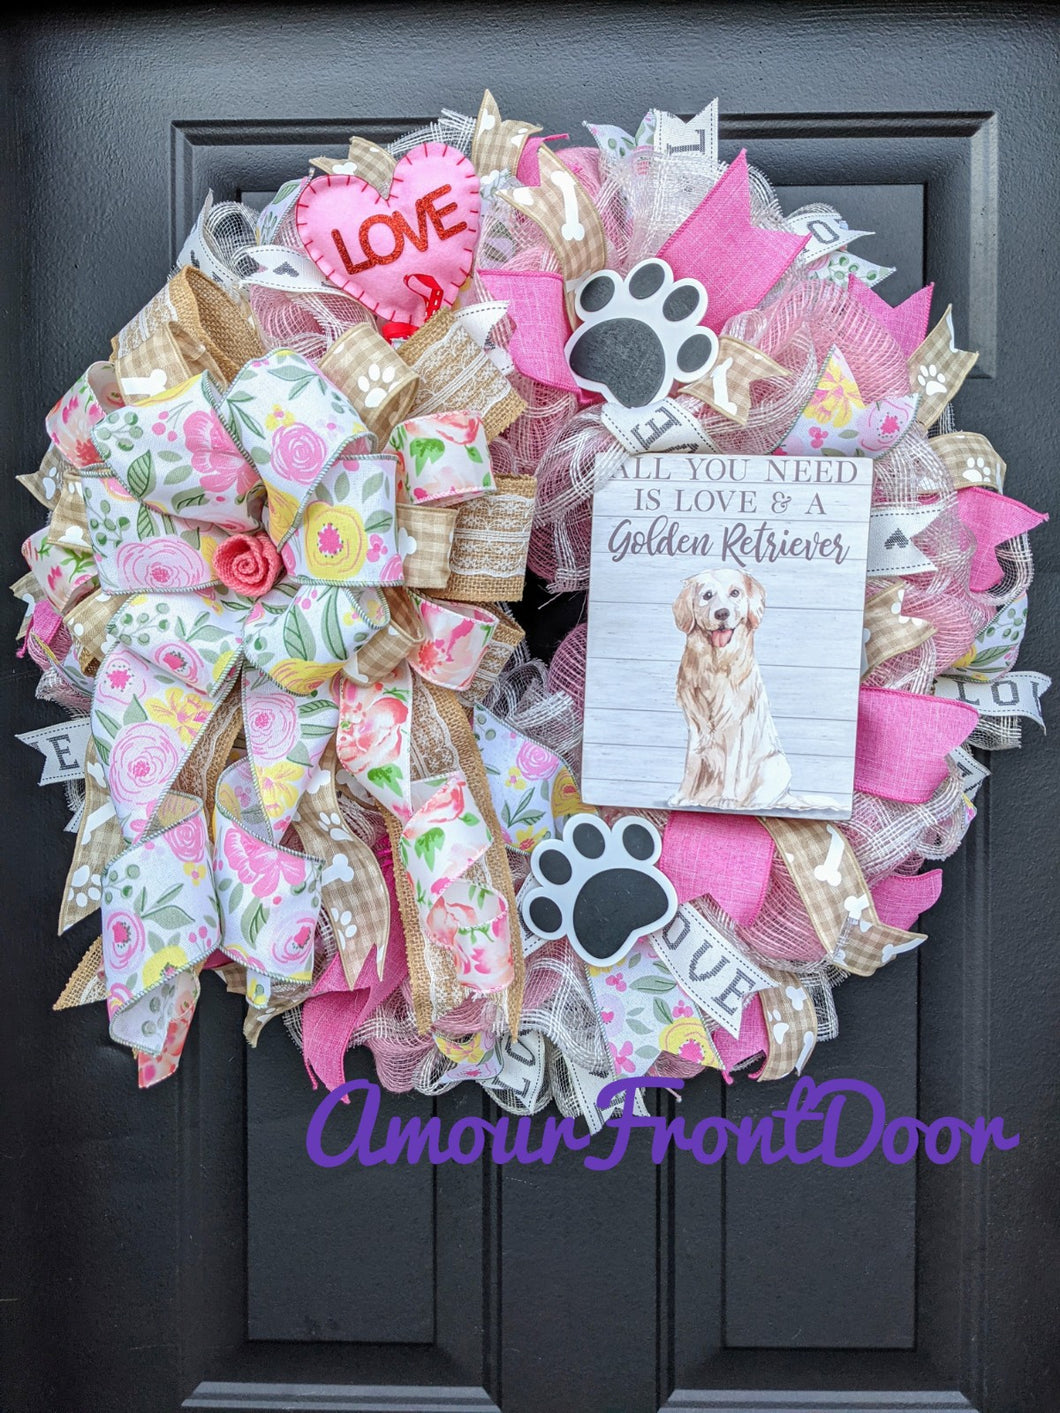 Golden Retriever Wreath, Valentine Dog Wreath, Dog Paw Print Wreath, Dog Wreath